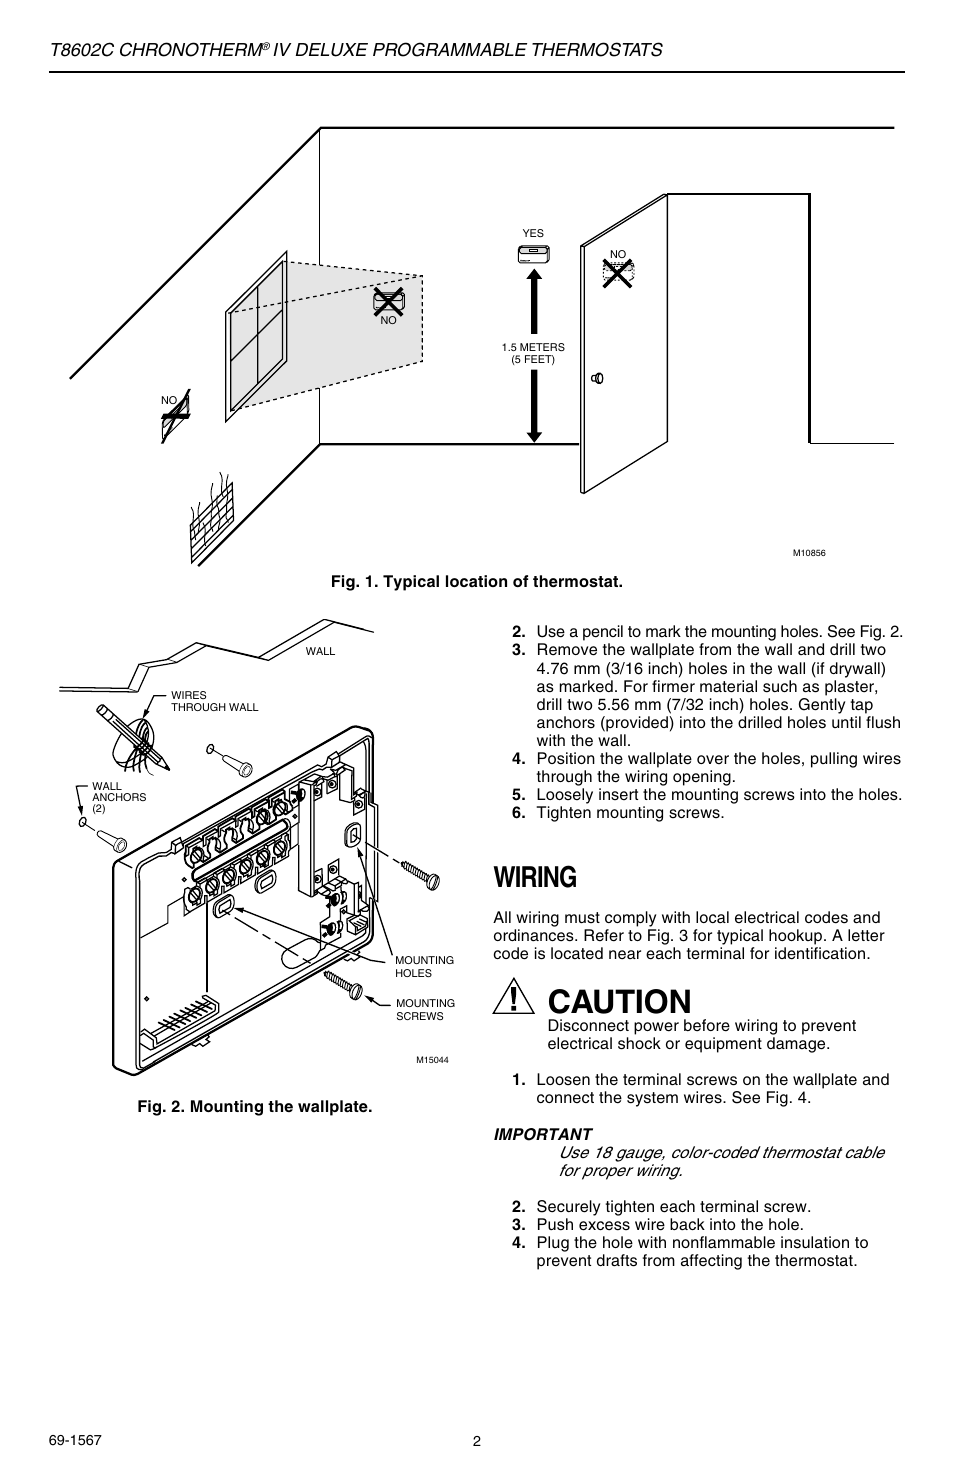 Caution Wiring T8602c Chronotherm Honeywell Iv Thermostat Iii Diagram User Manual Page 2 12